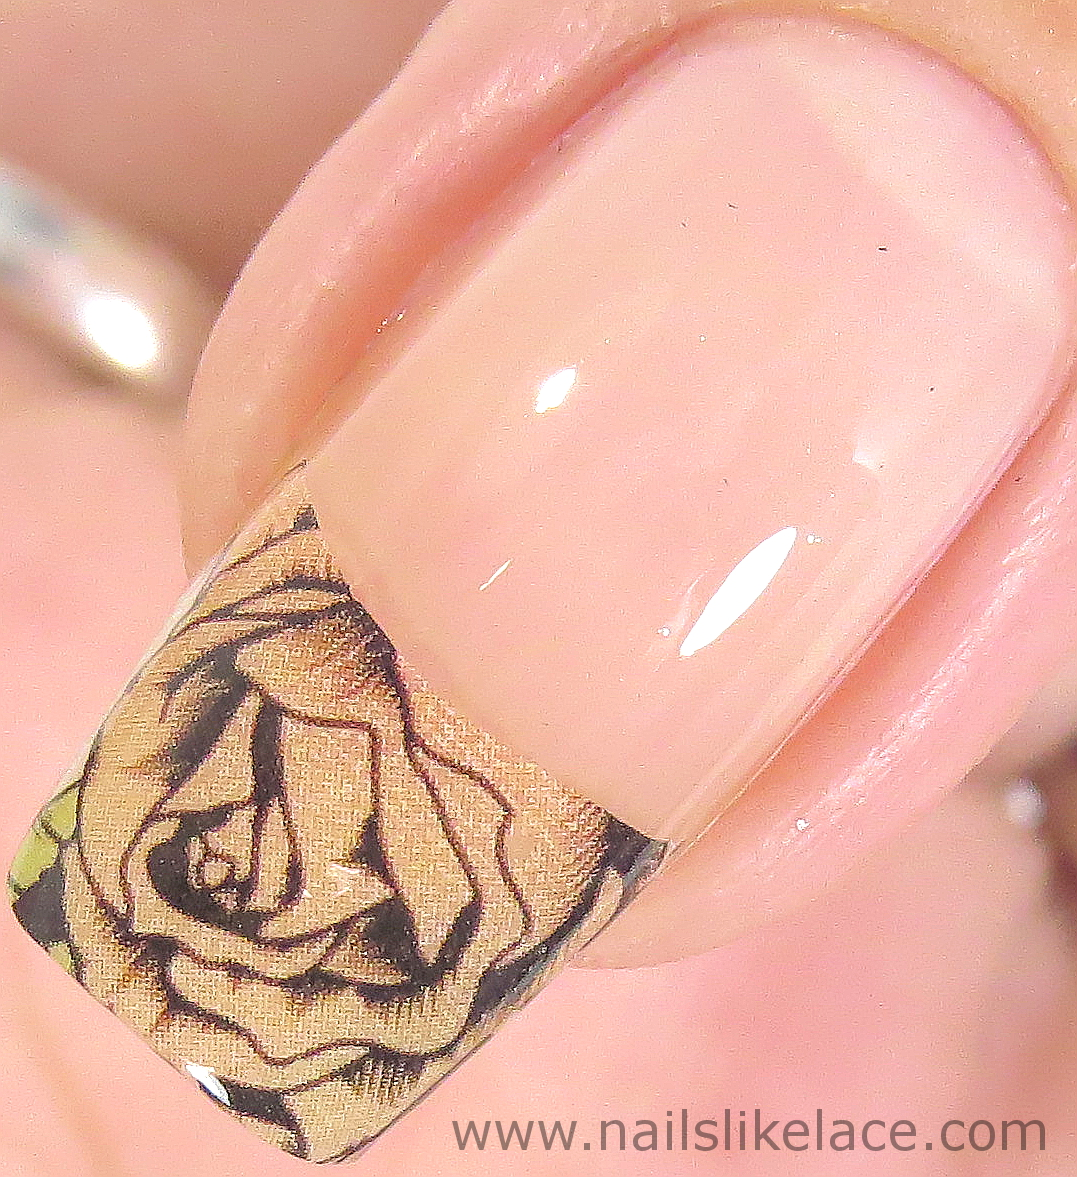 NailsLikeLace: Peach Rose Decals & Metallic Gold Accent